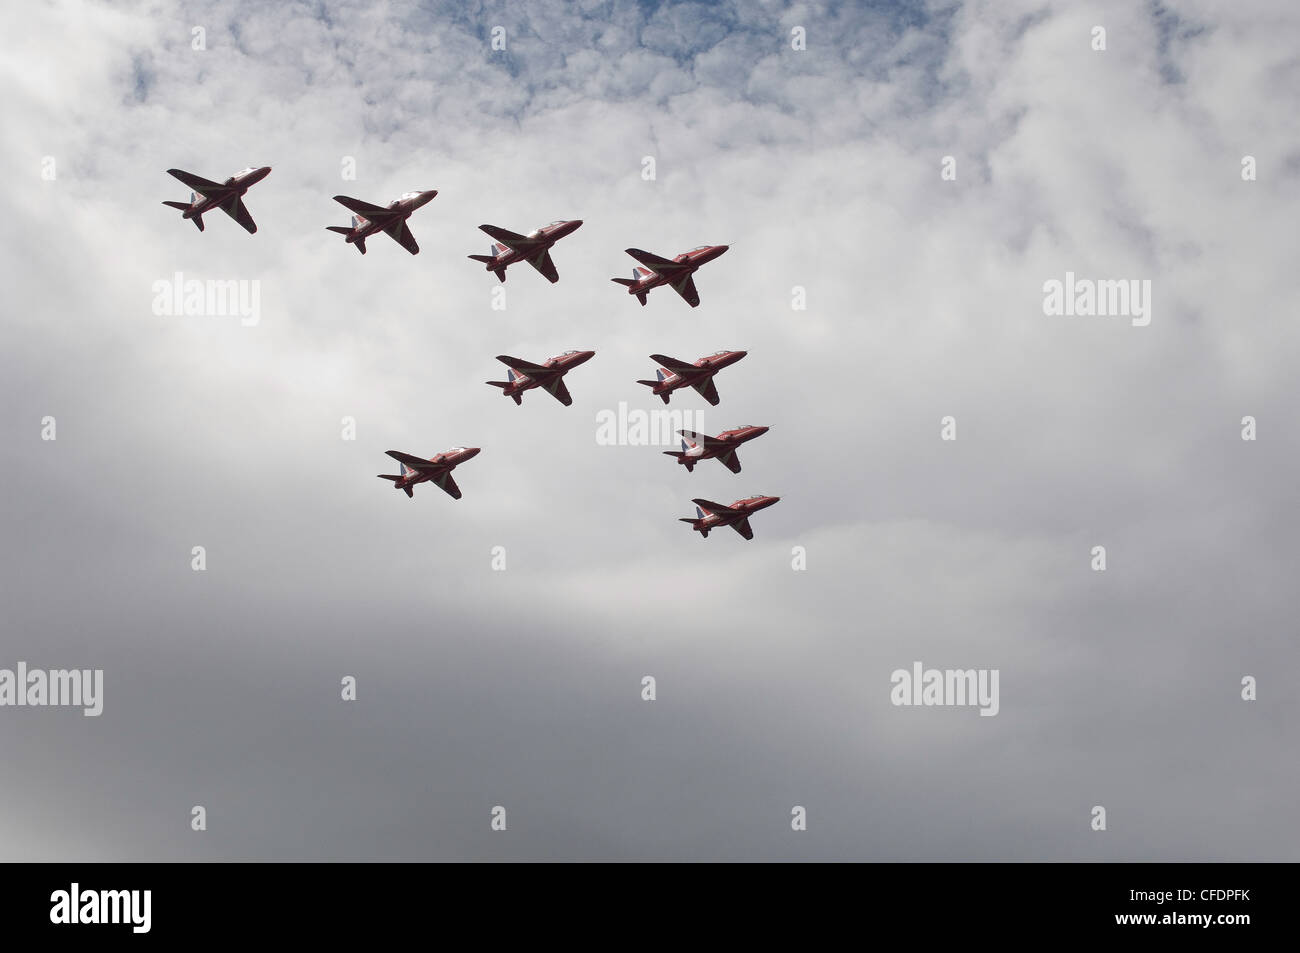 Red Arrows famous RAF aerobatic display team. - Stock Image